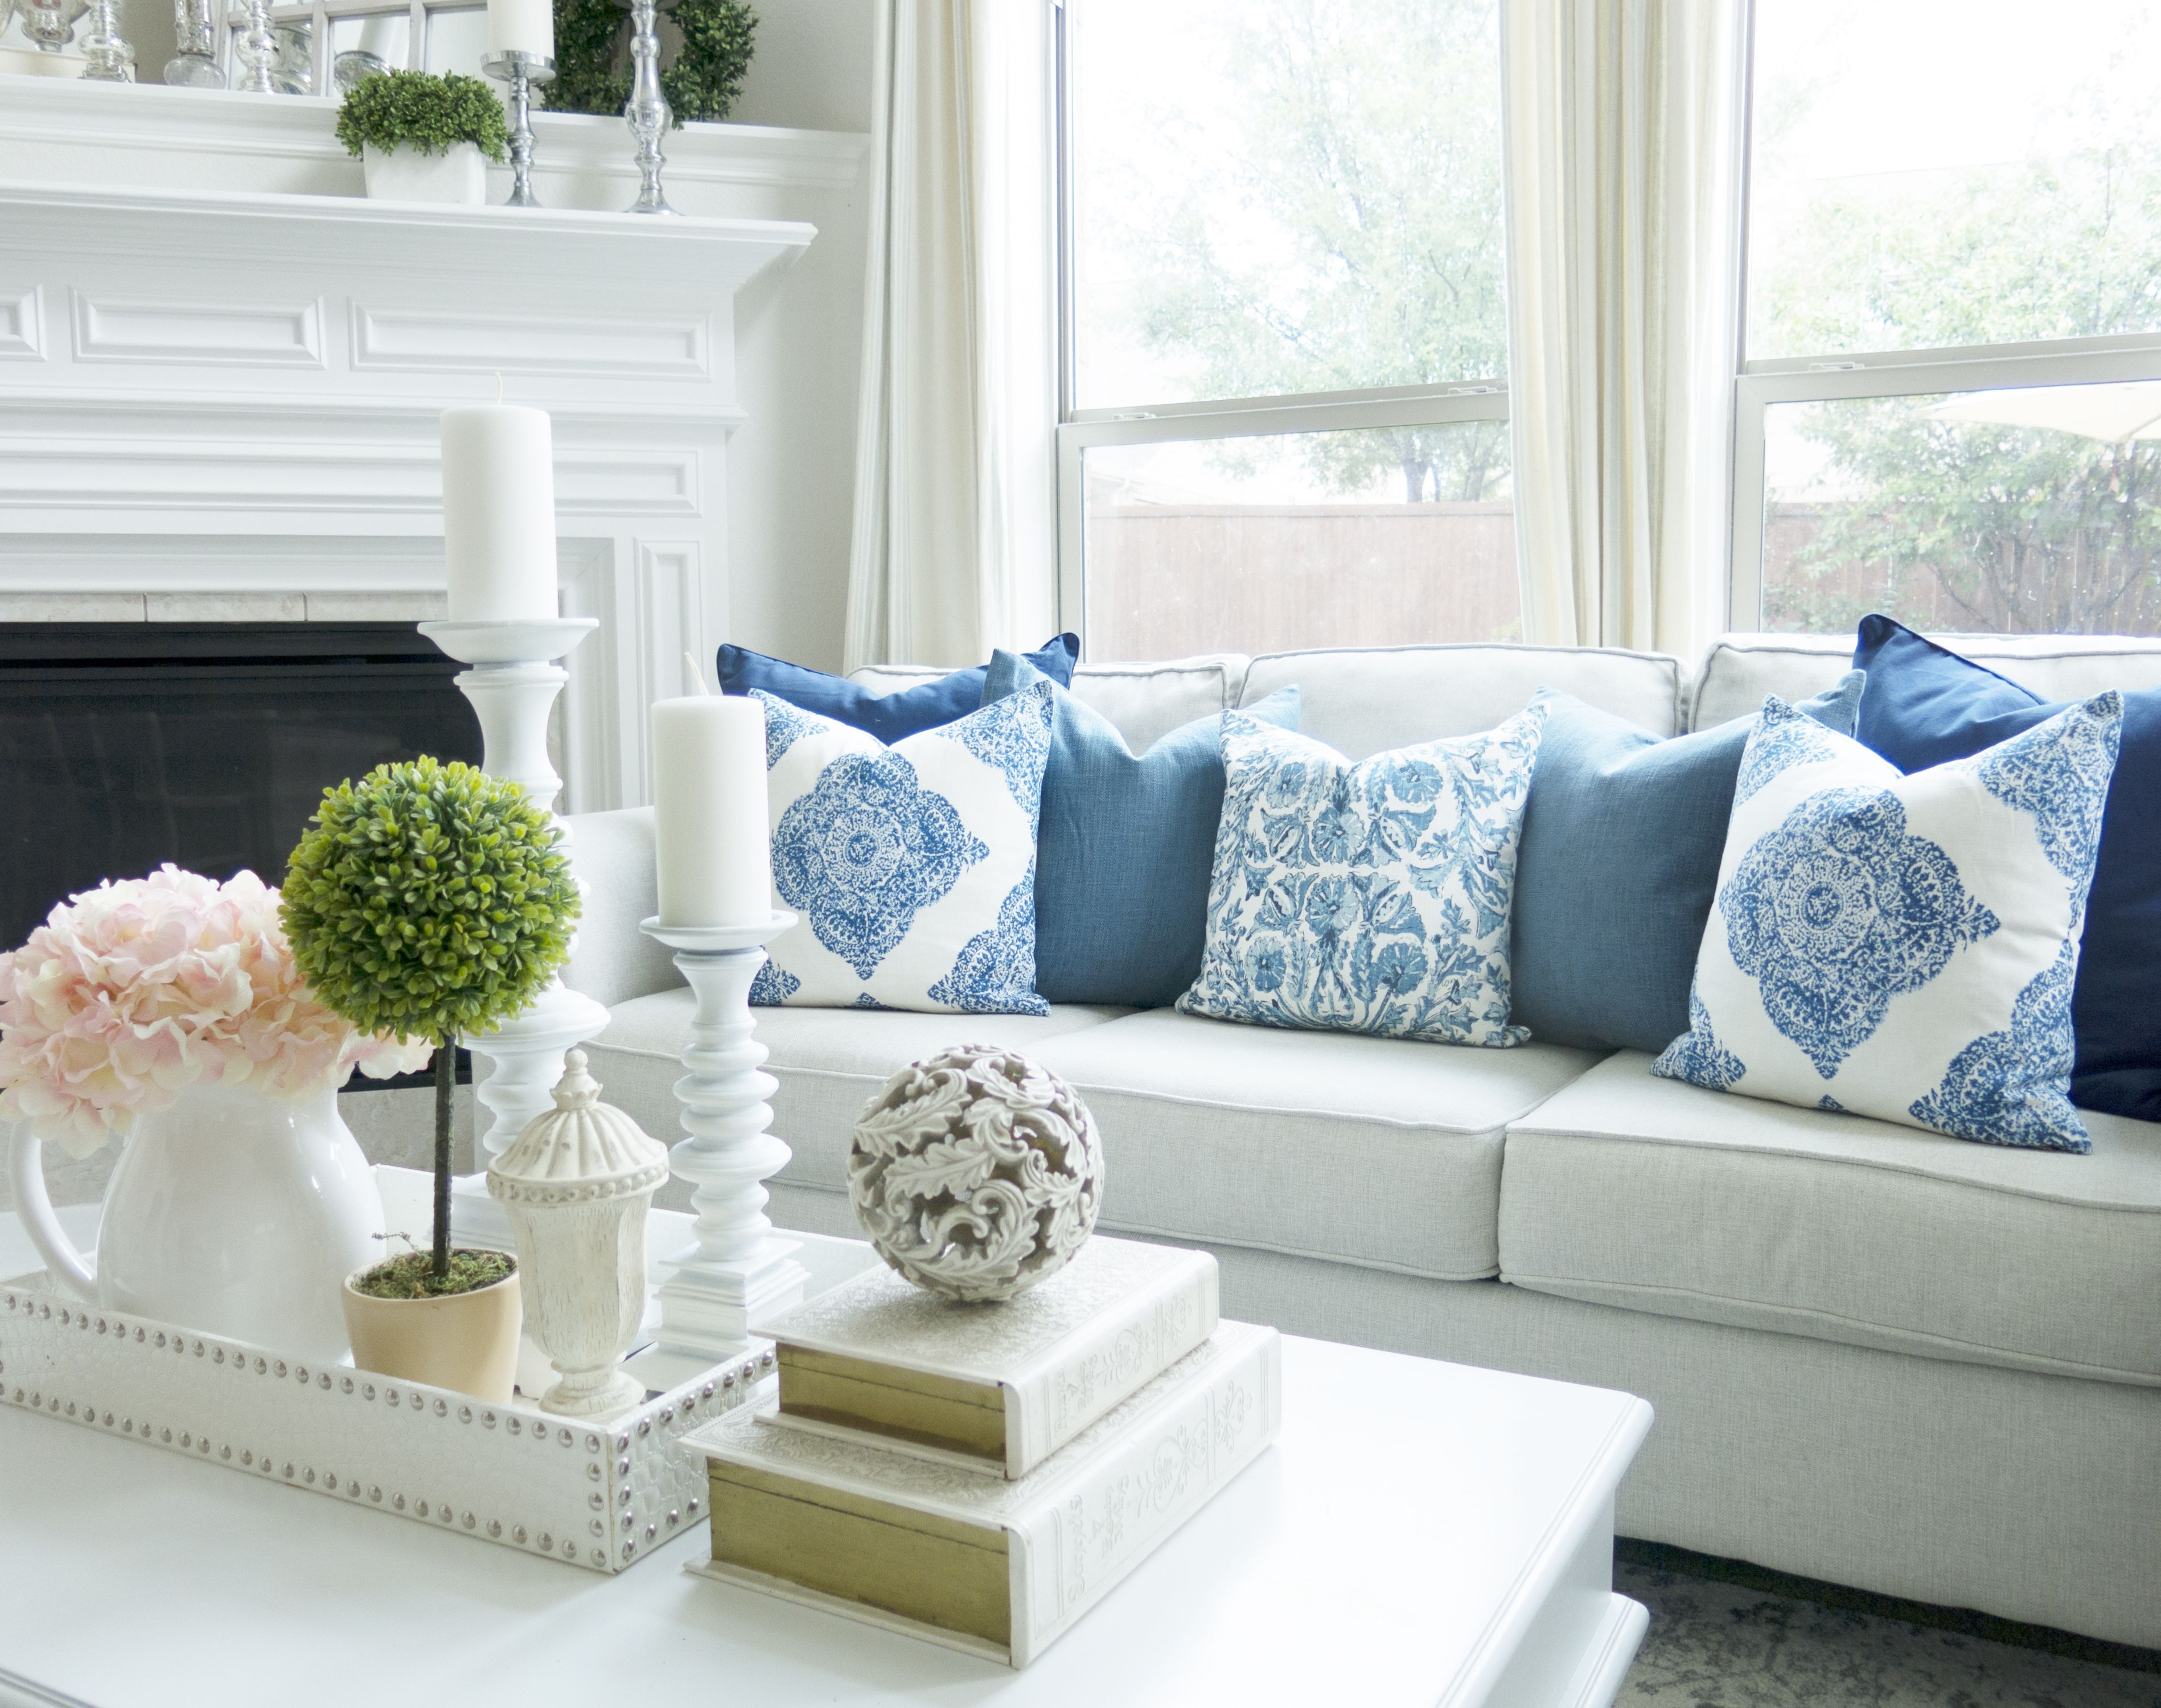 Livingroom Inspiration And Ideas Navy Blue Modern Farmhouse Look Magnolia Wreath And Topiaries By Hamptons Style Living Room Living Room Grey Living Room